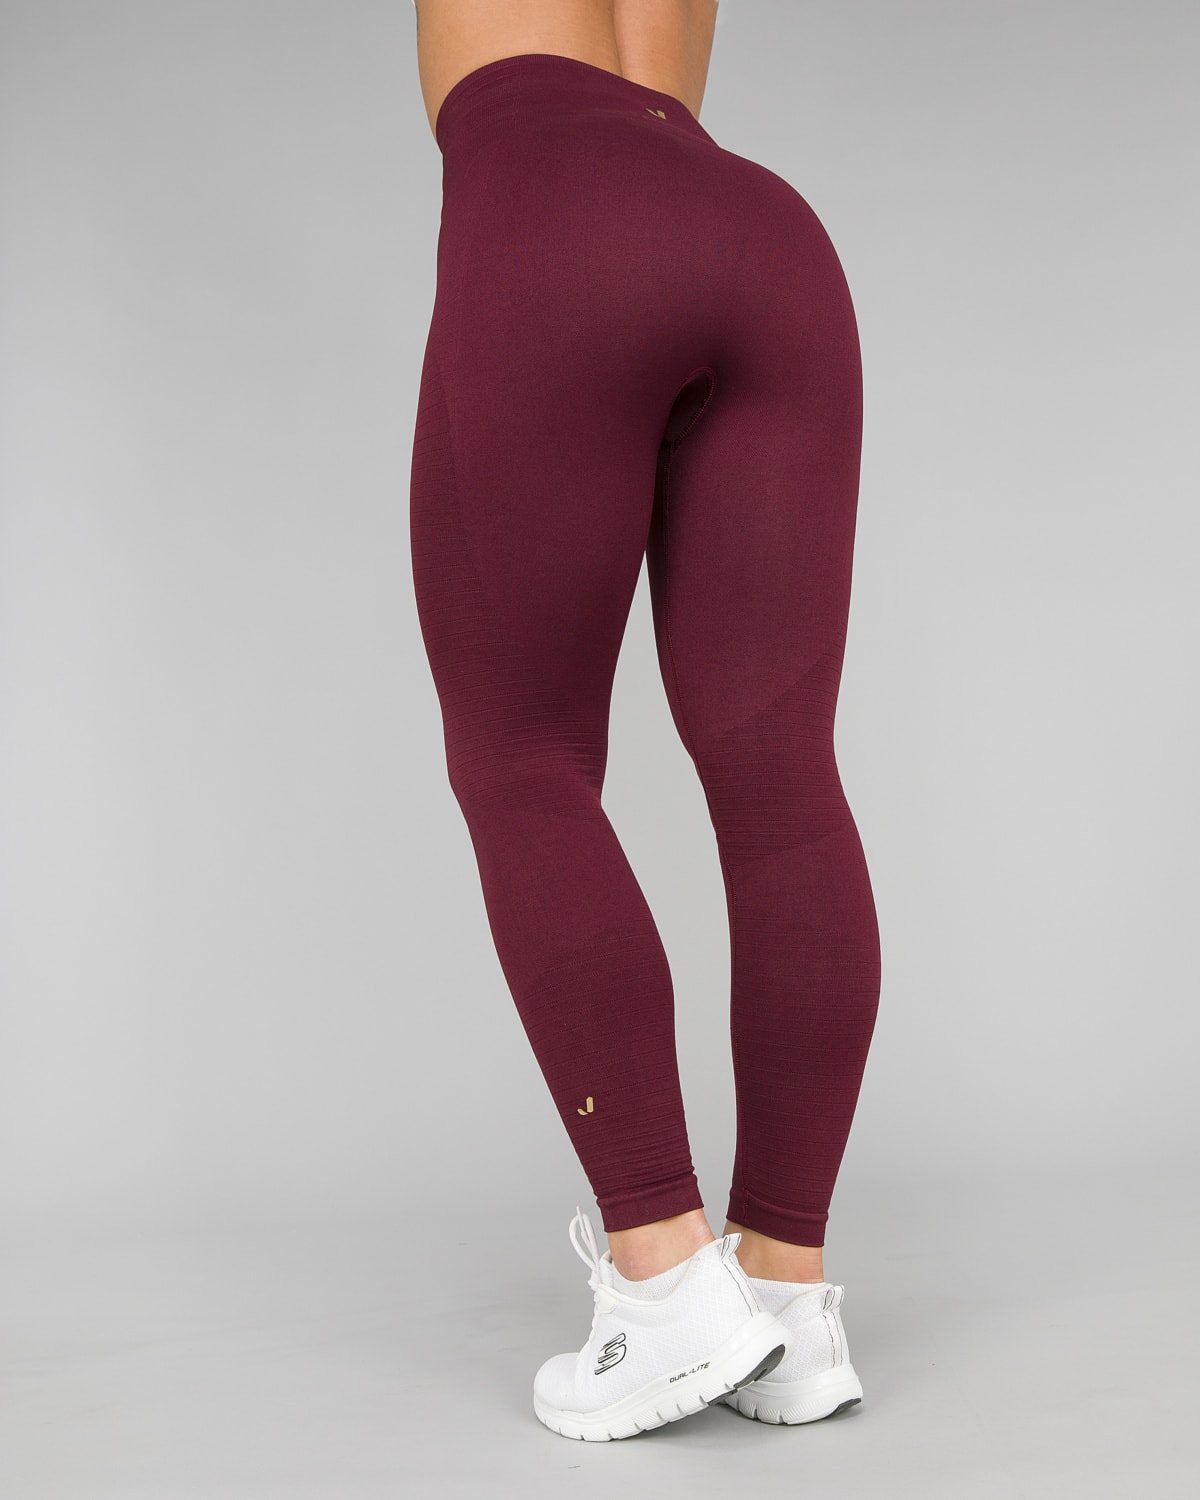 Jerf Gela 2.0 tights Maroon14